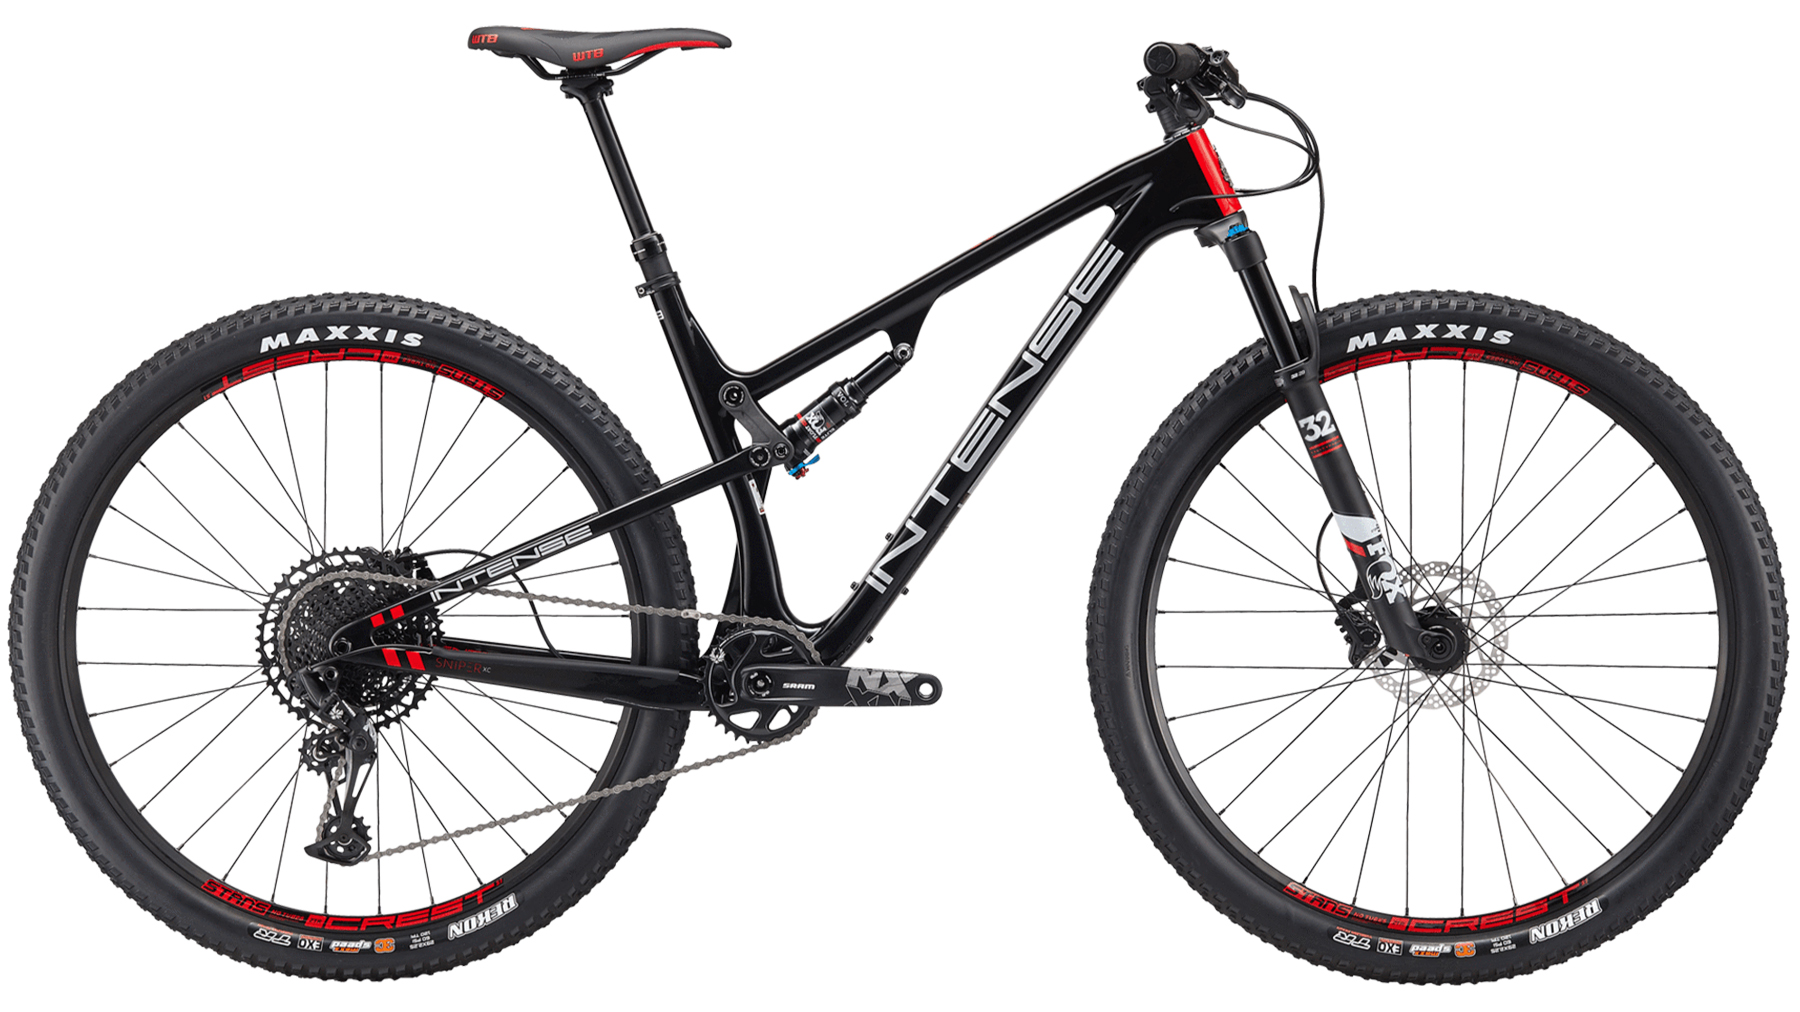 intense full suspension mountain bike in black and red